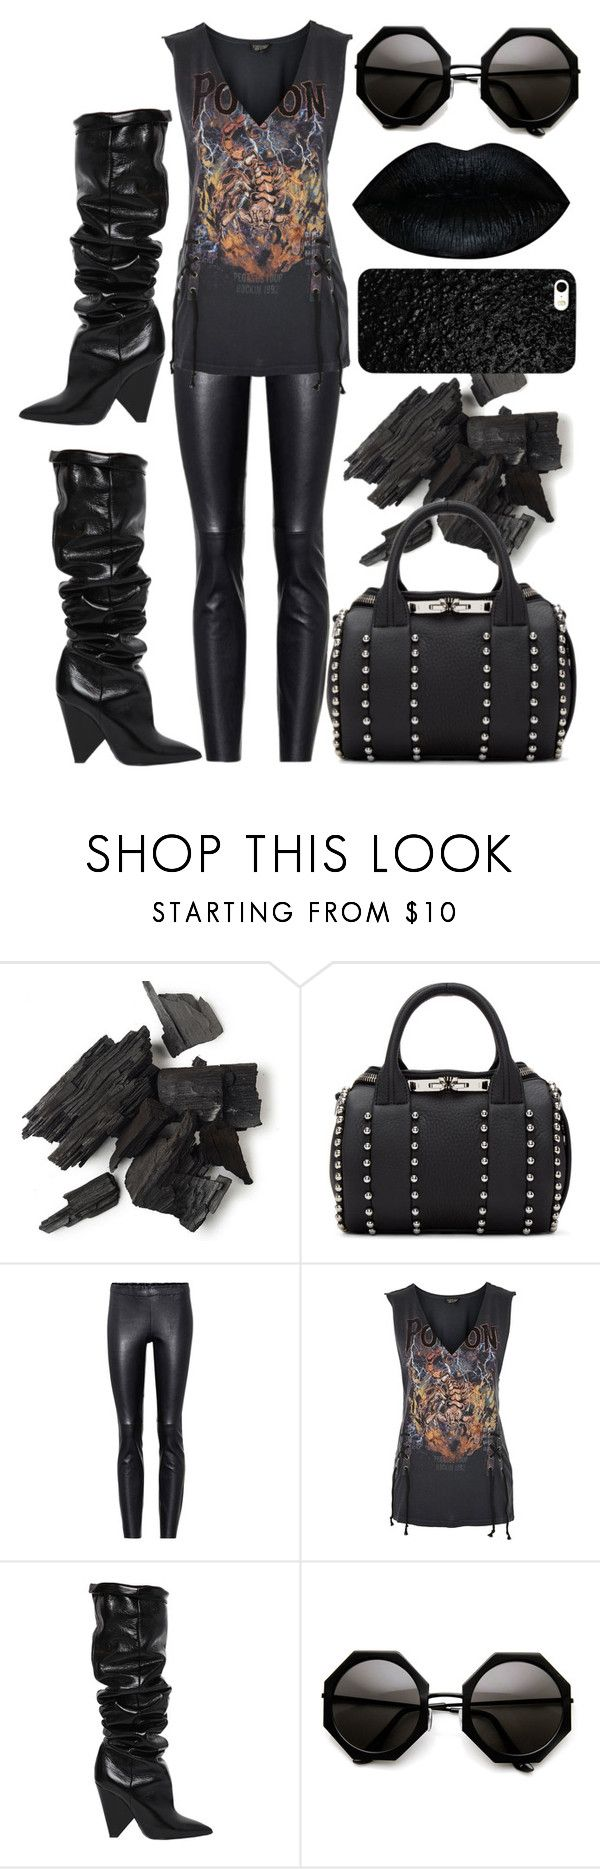 """That girl is poison"" by ladybug71181 ❤ liked on Polyvore featuring Alexander Wang, STOULS, Topshop and Yves Saint Laurent"